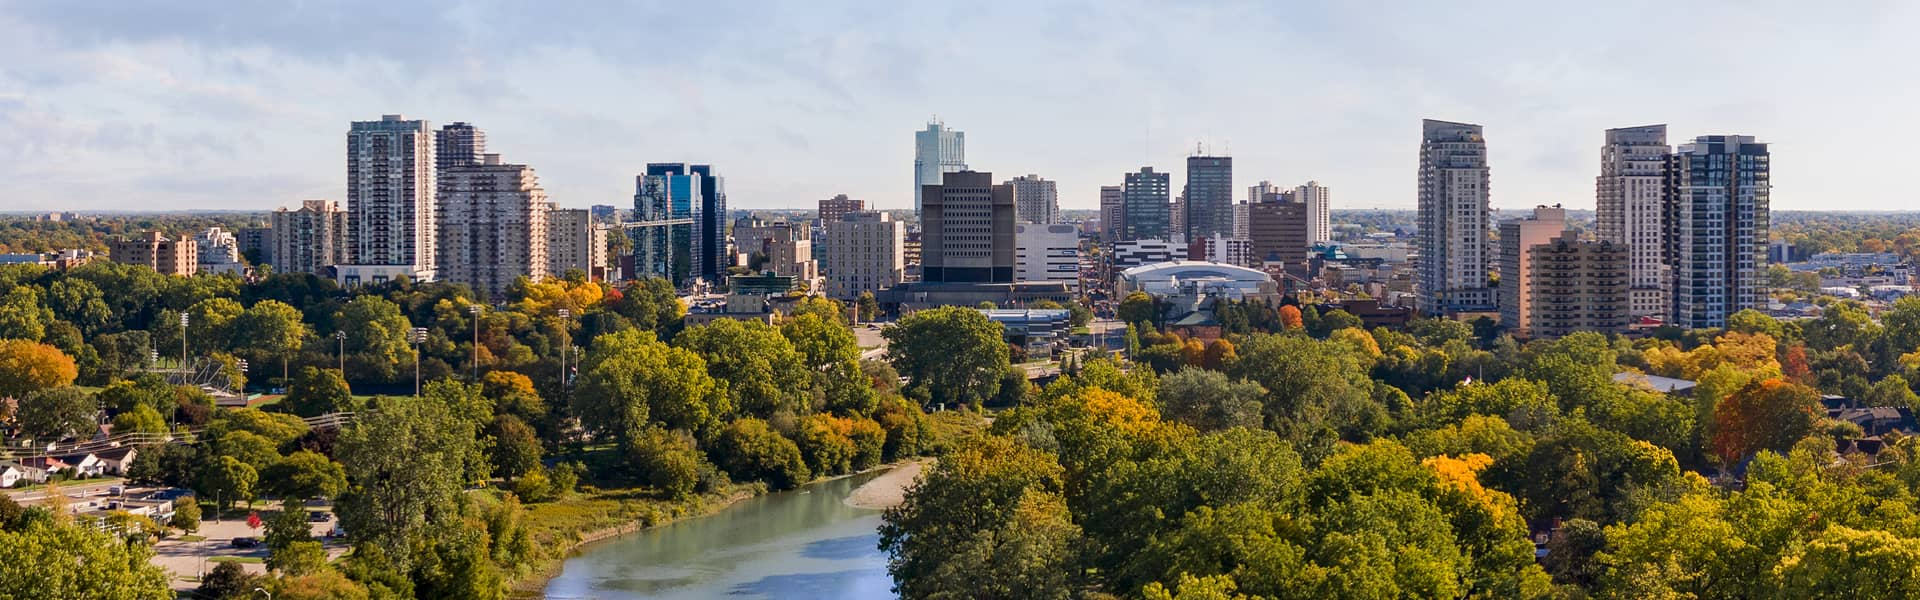 Landscape view of London, Ontario